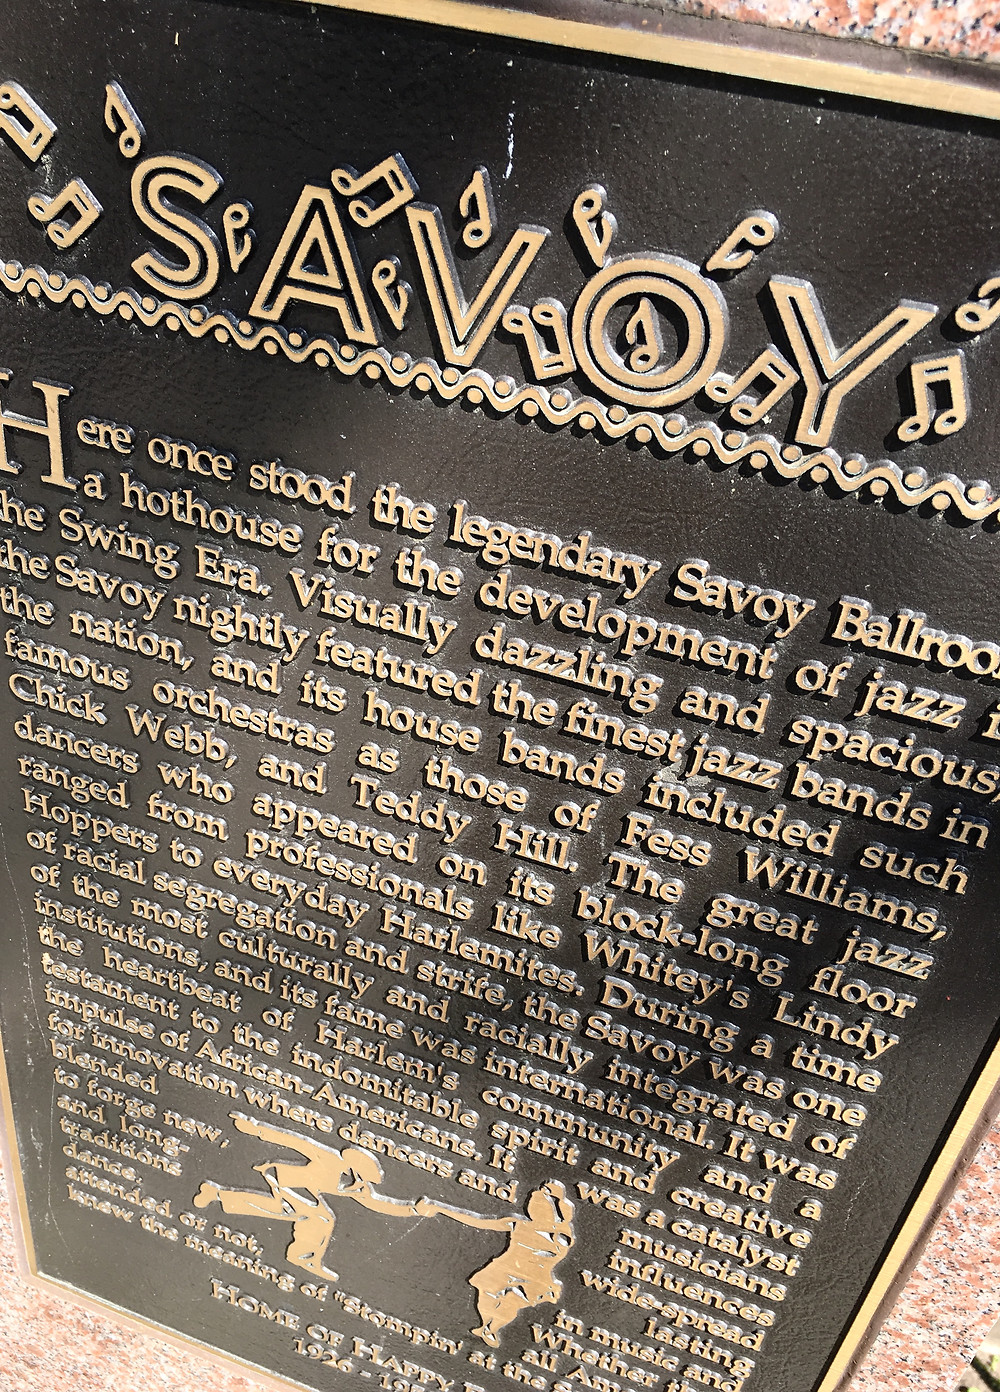 The plaque in Harlem commemorating the Savoy Ballroom